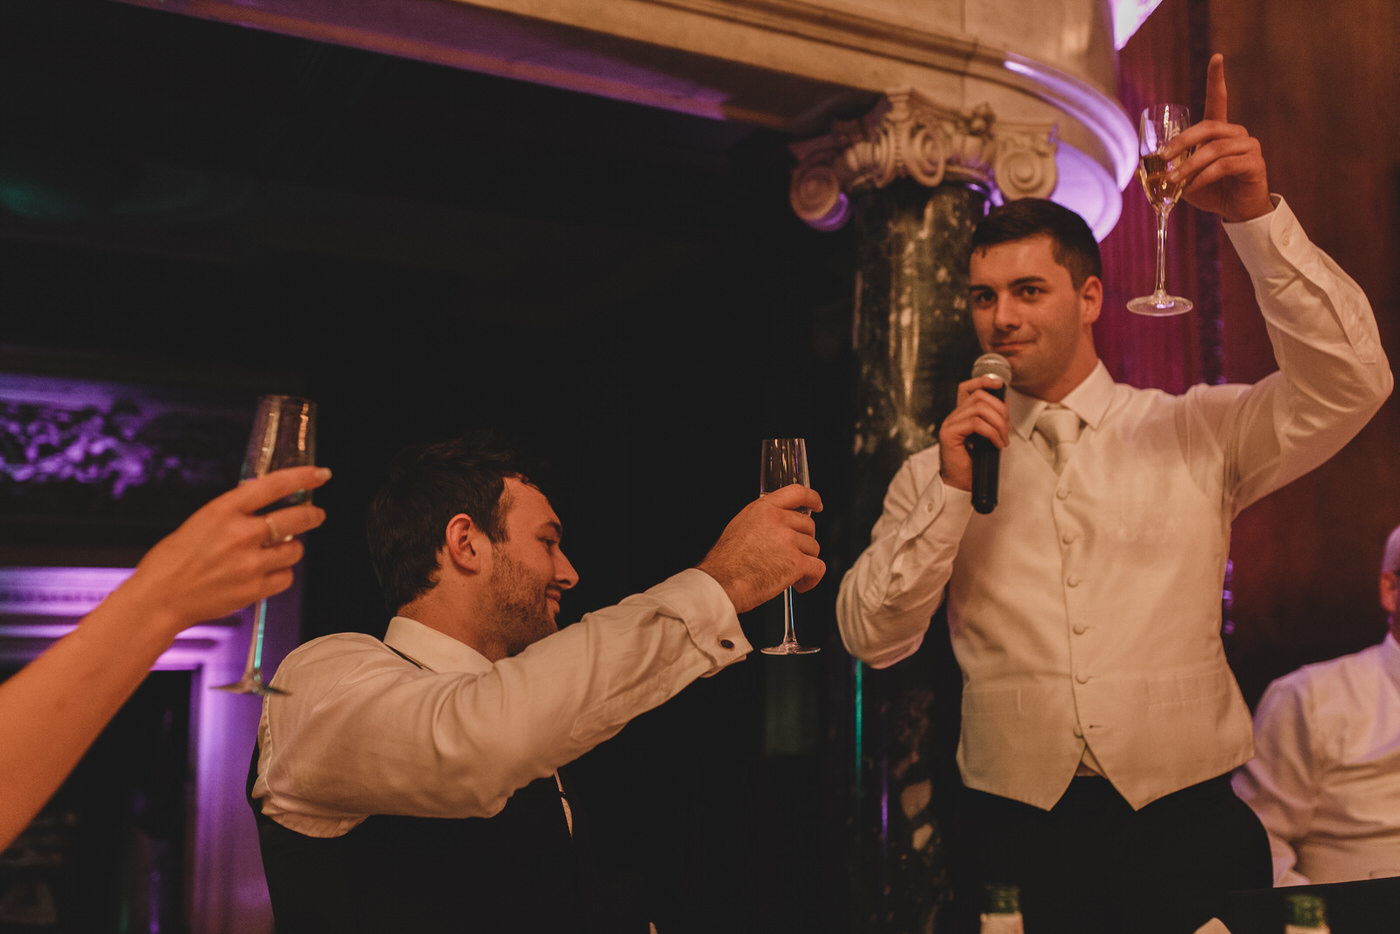 the best man raises a toast to the happy couple